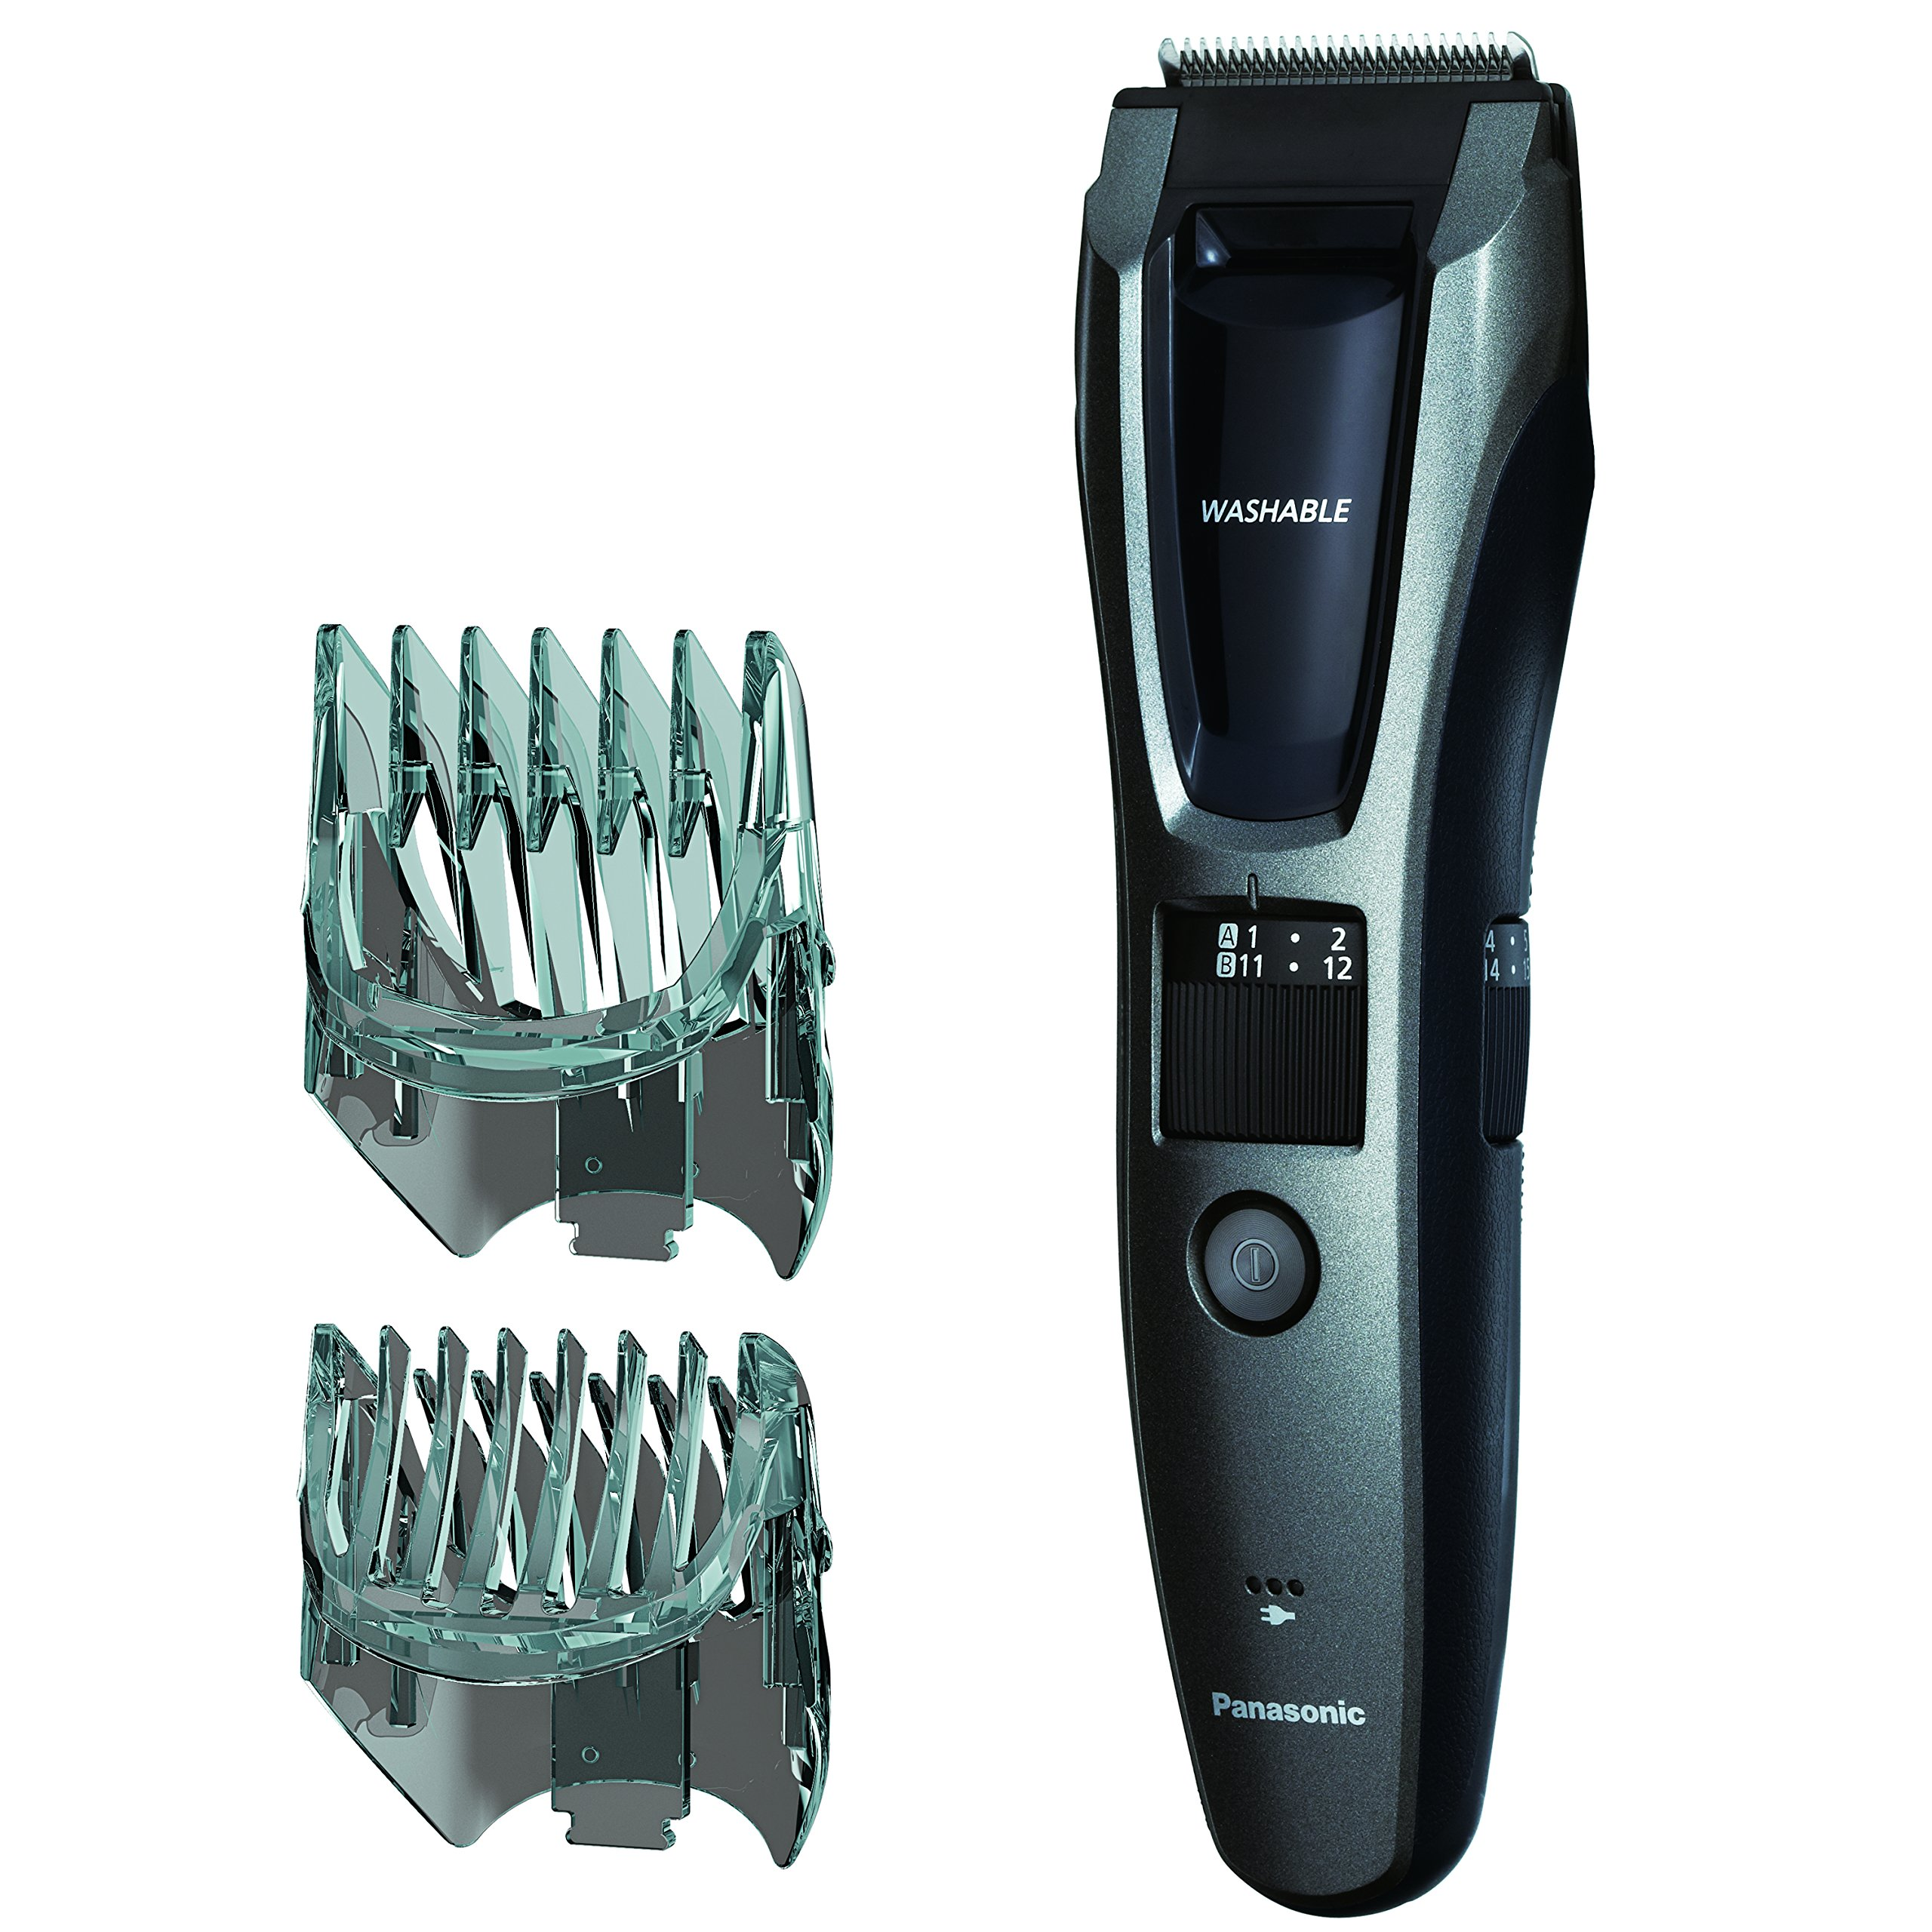 Panasonic Hair and Beard Trimmer, Men's, with 39 Adjustable Trim Settings and Two Comb Attachments for...